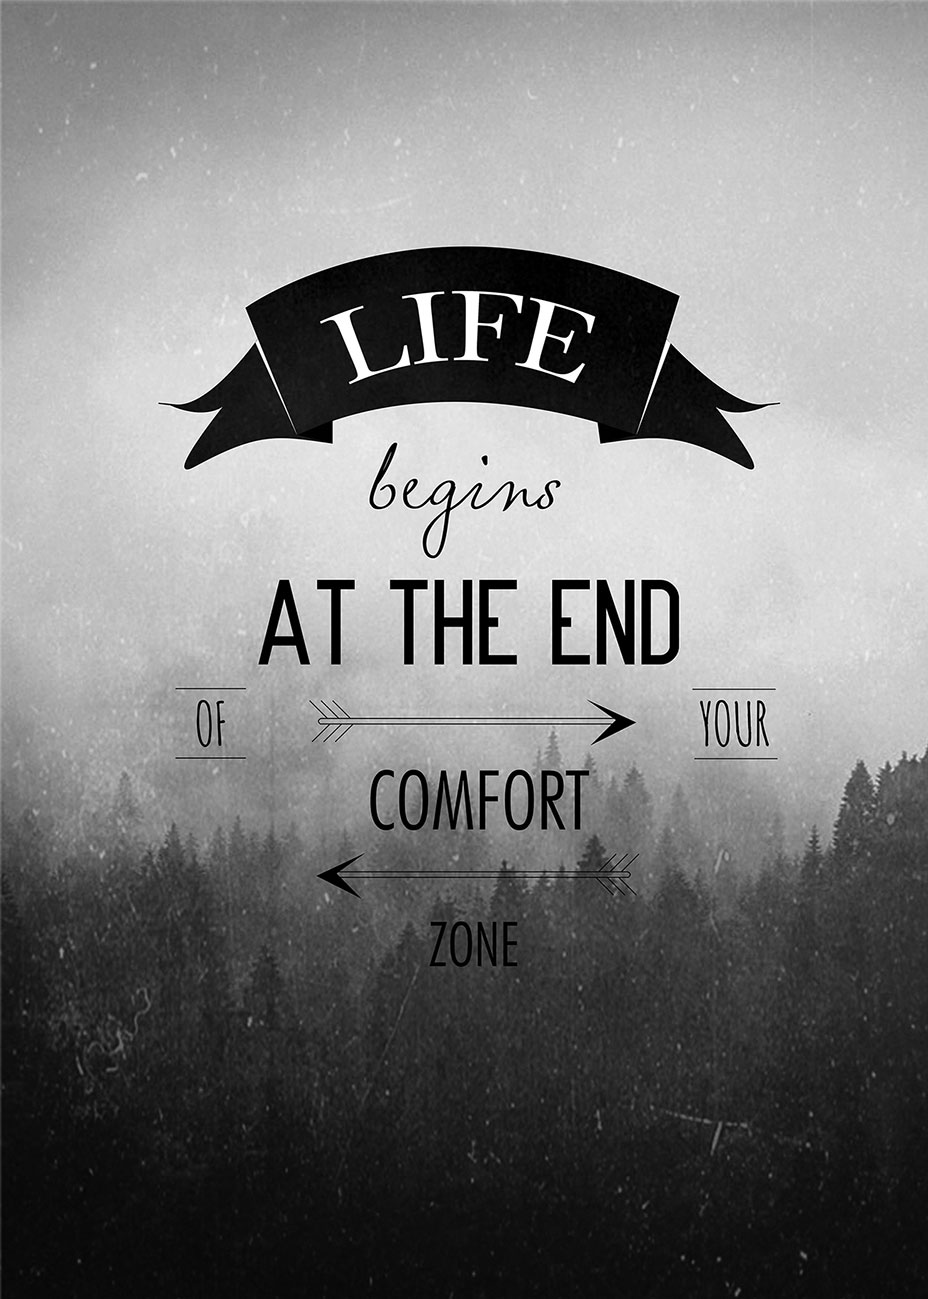 End Of Life Quotes Inspirational Top Inspirational Quotes  Best Motivational Quotes